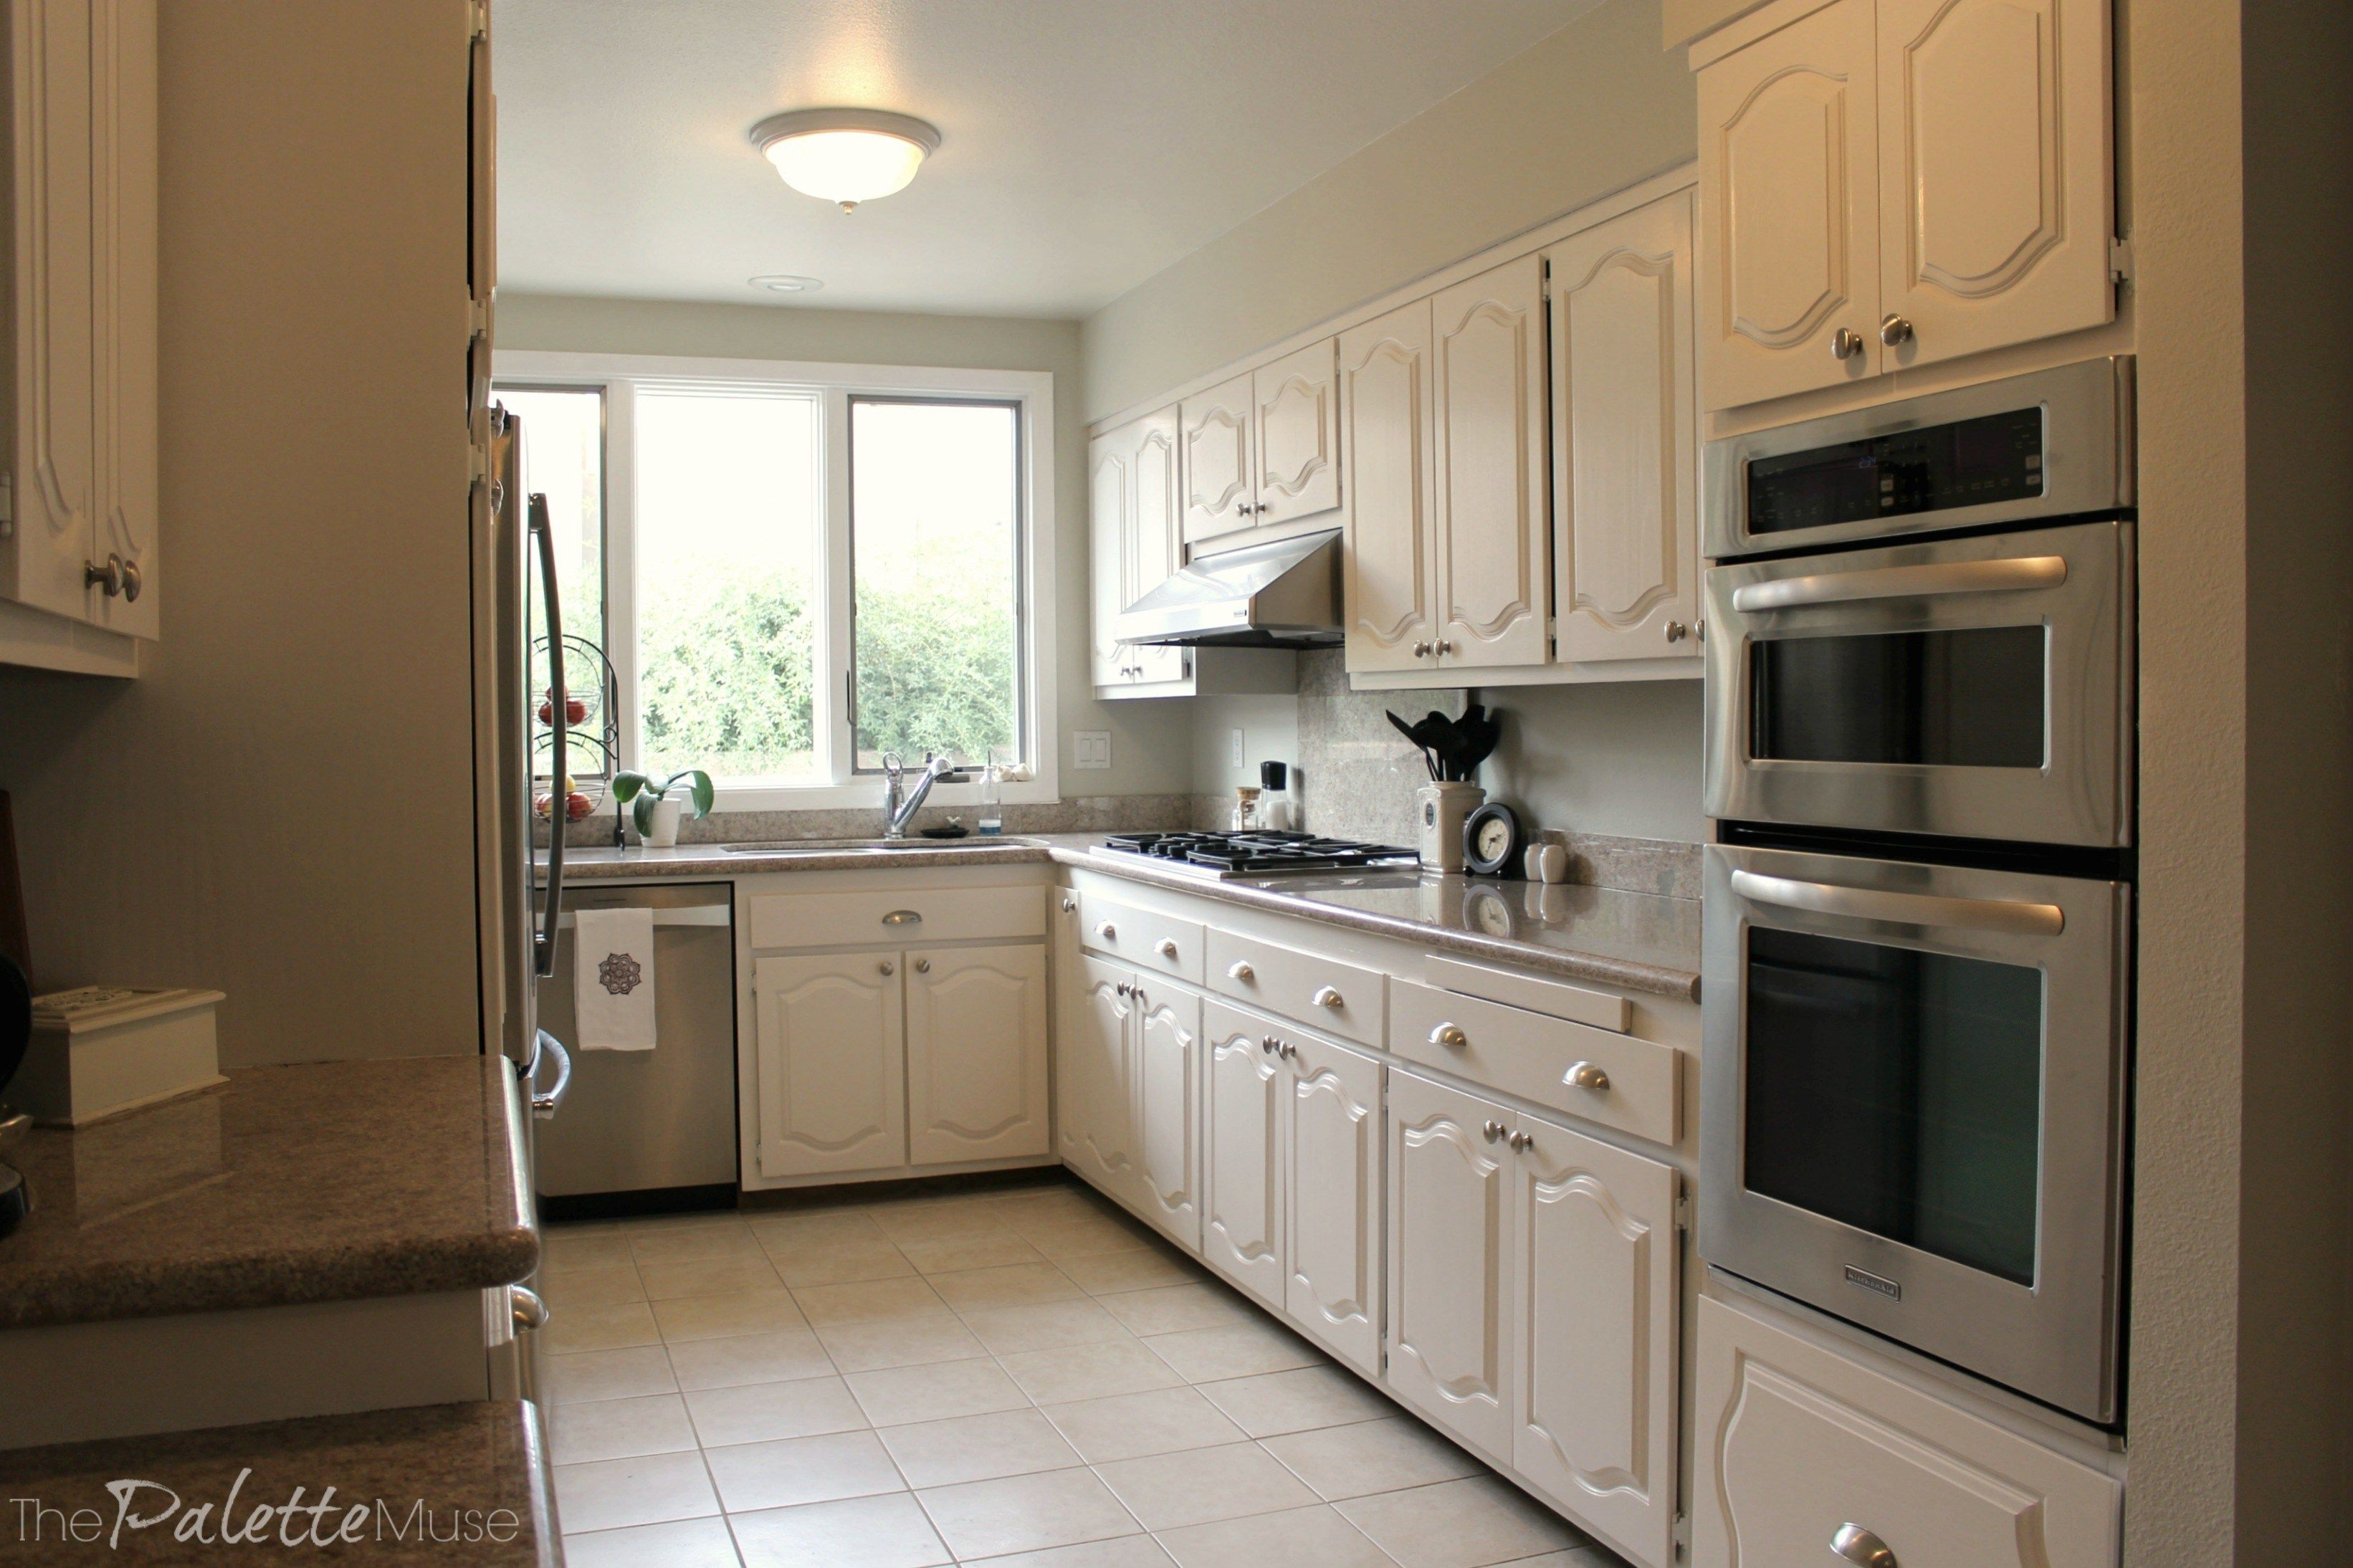 The Best Way to Paint Kitchen Cabinets | Kitchens, Painting kitchen ...